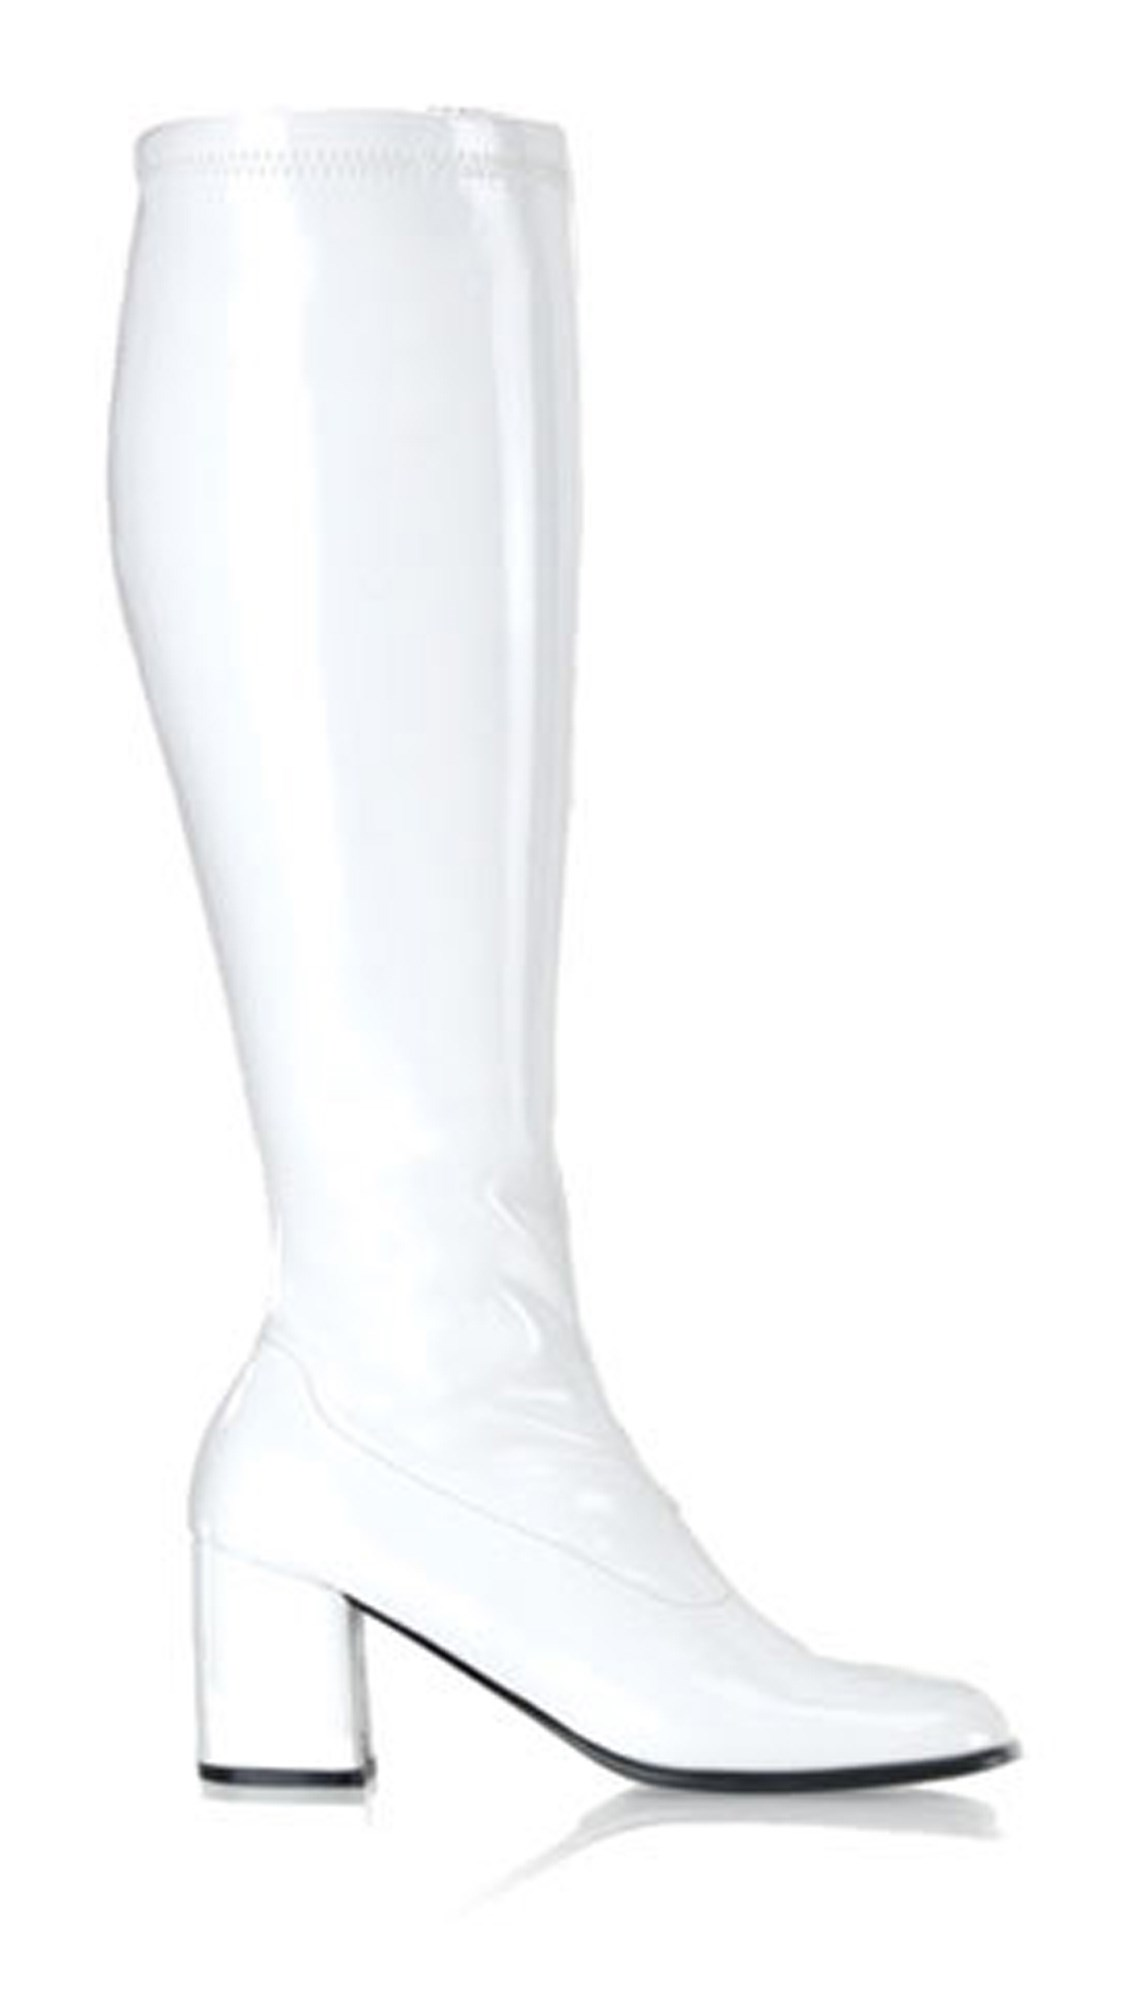 Gogo White Adult Boots - Wide Width